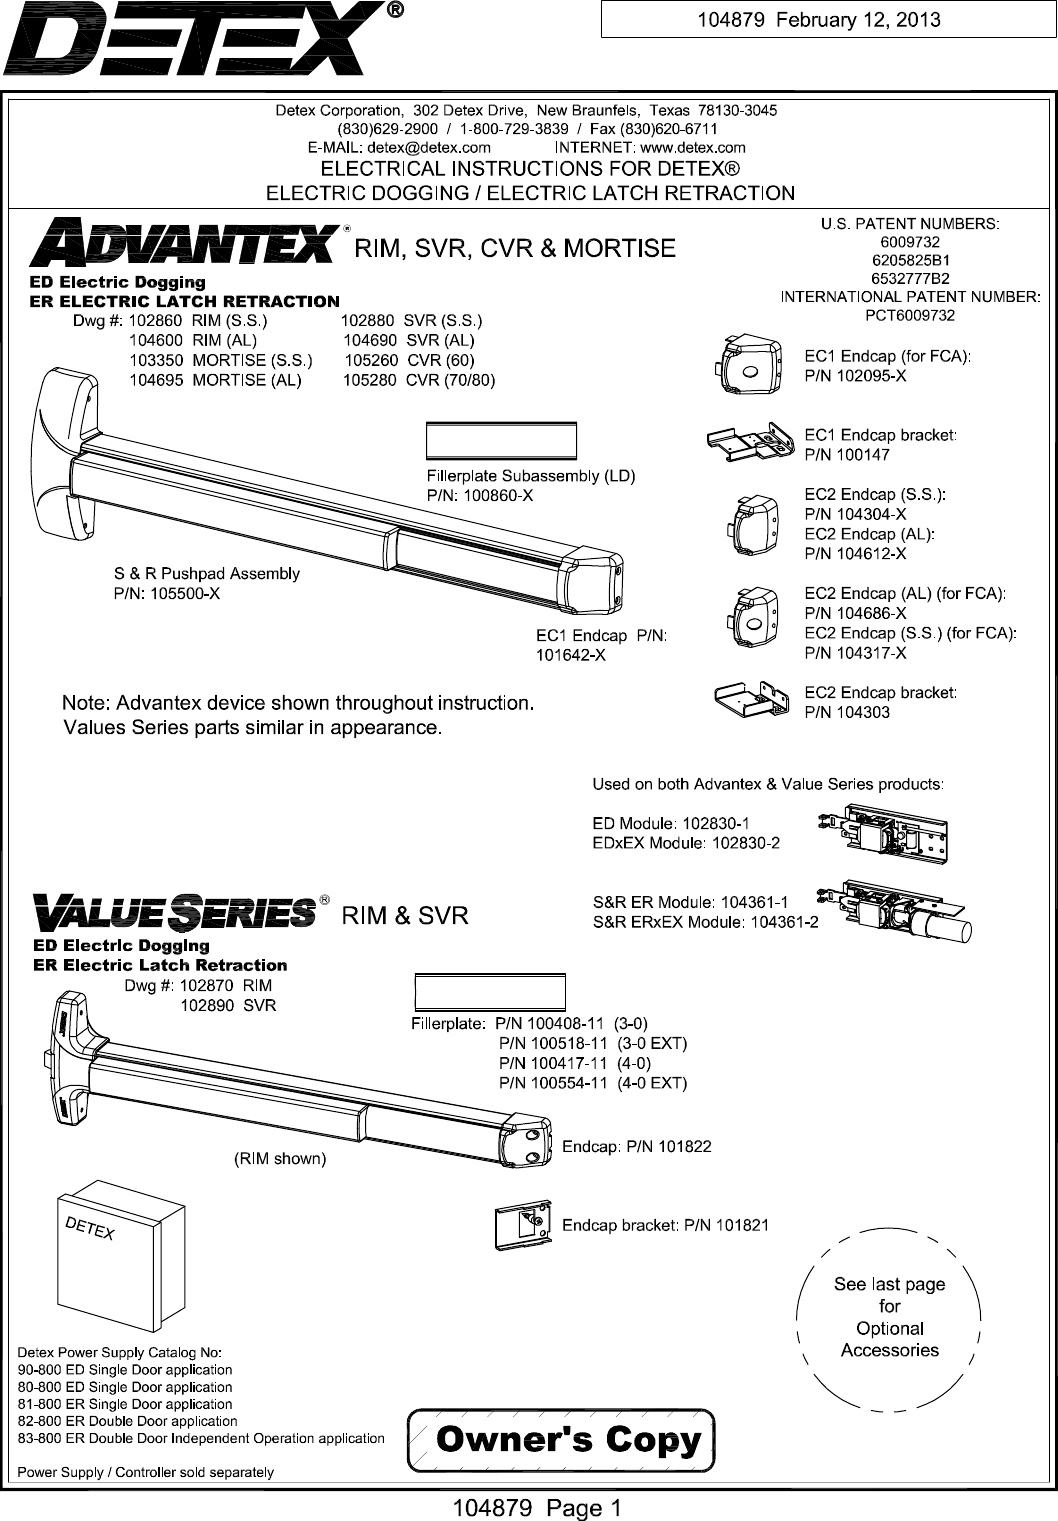 Detex R Electrical Instructions For Electric Dogging Latch Wiring Diagrams Retraction Rim Svr Cvrmortise 104879